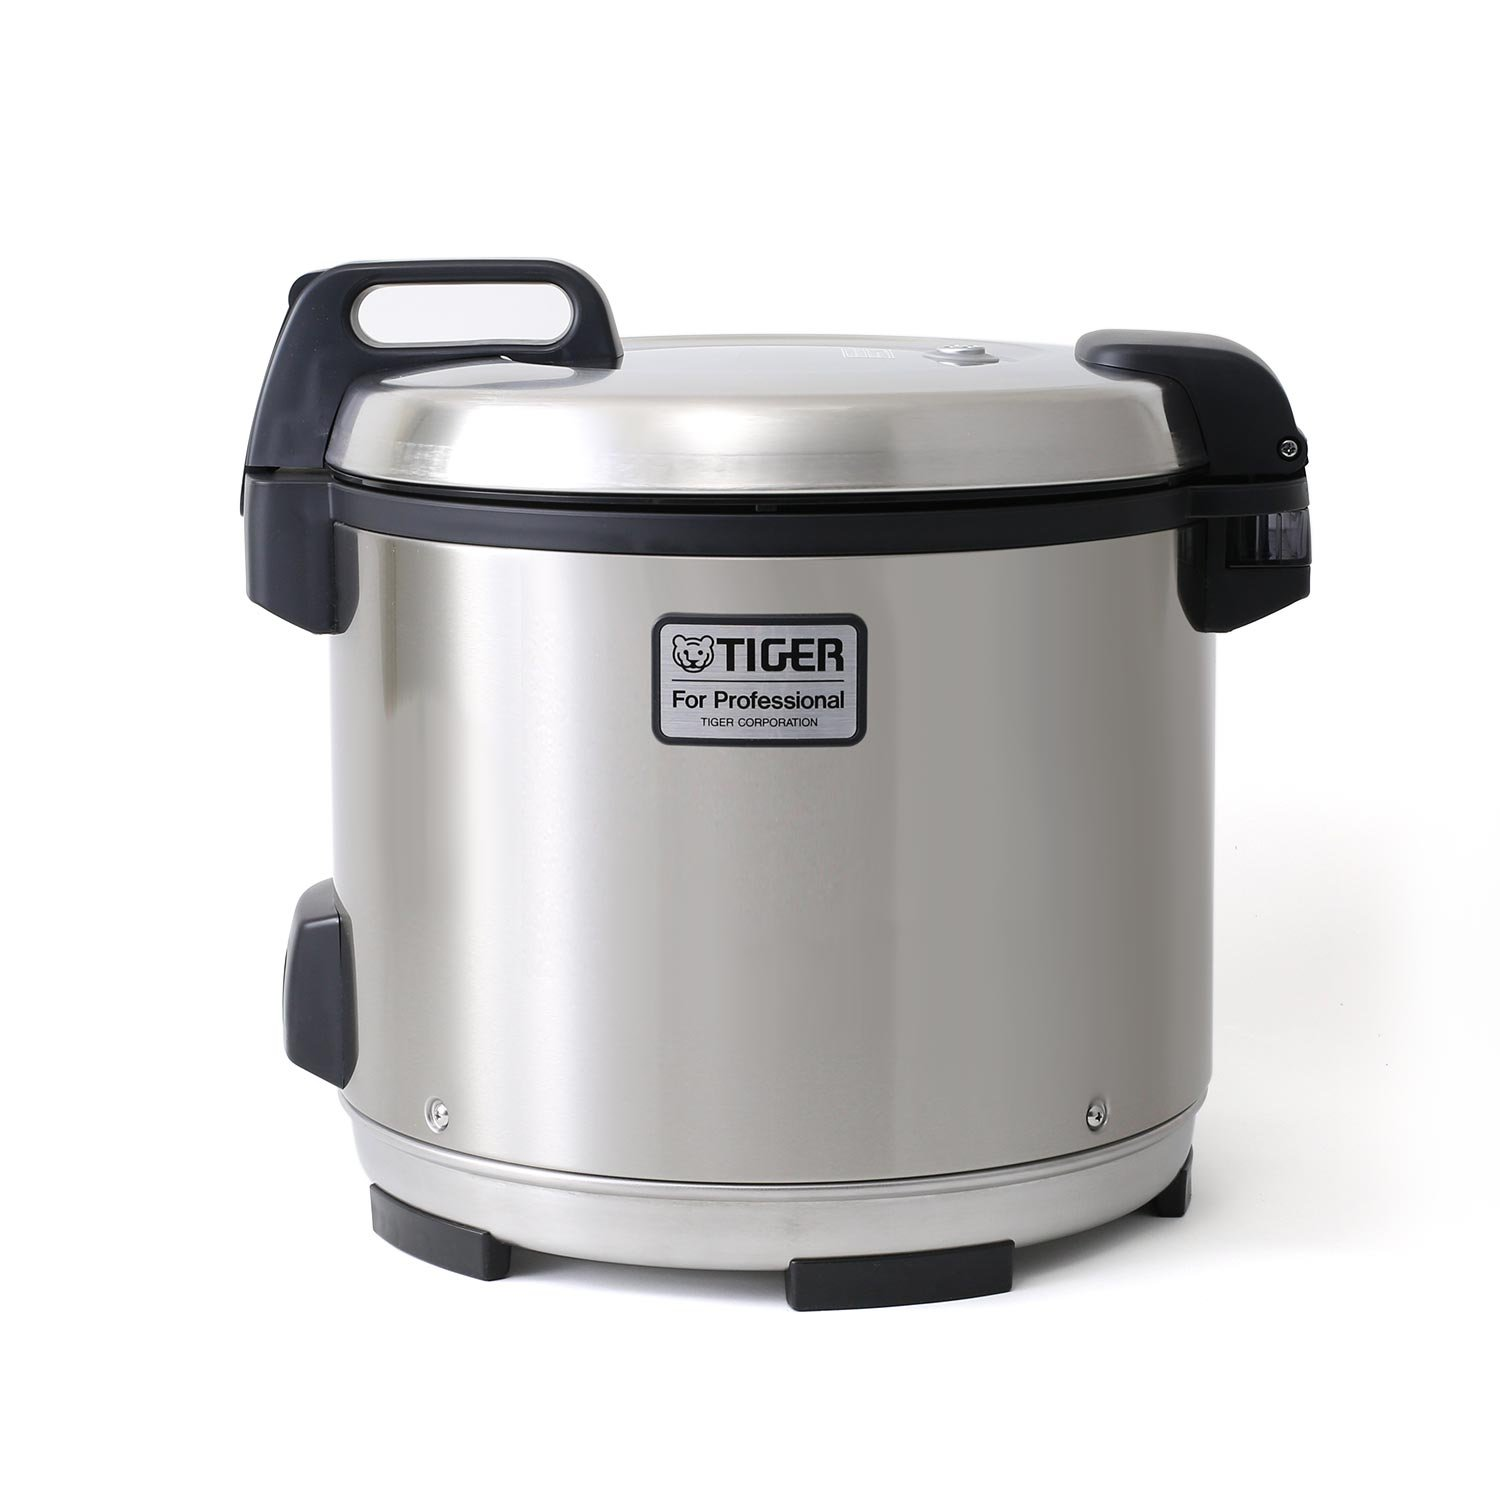 Tiger rice cooker two bushel stainless cooked rice cooker for business use JNO-A360-XS